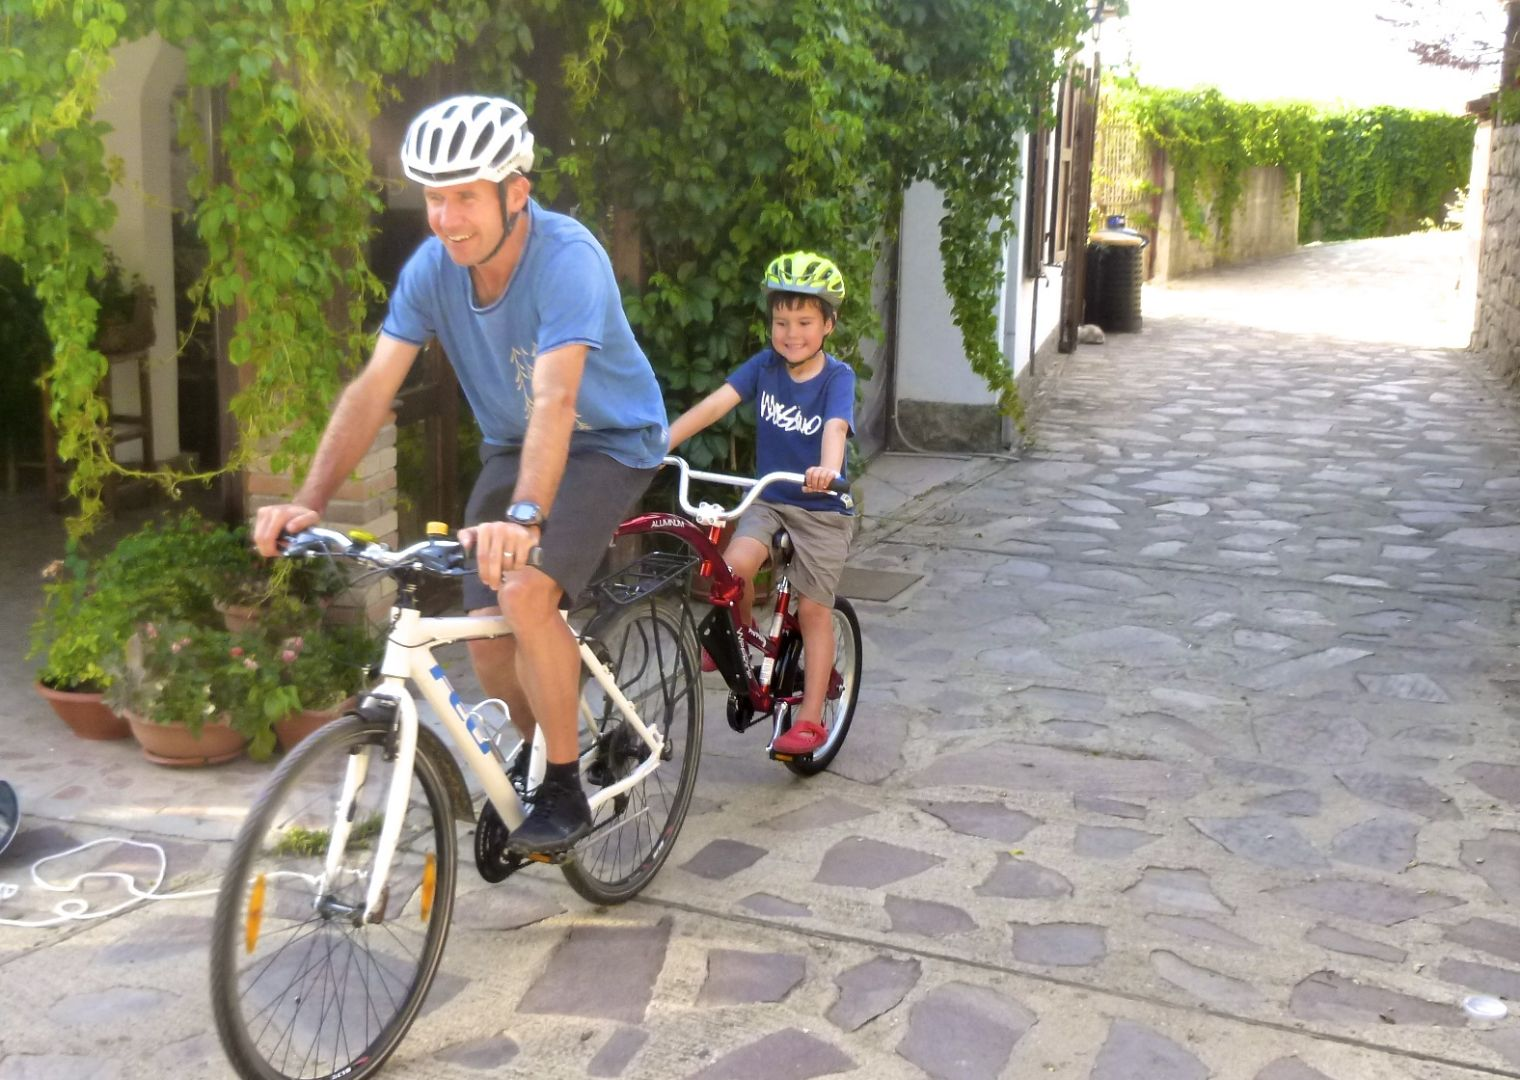 P1050228 2.jpg - Italy - Sardinia - Family Flavours - Guided Family Cycling Holiday - Family Cycling